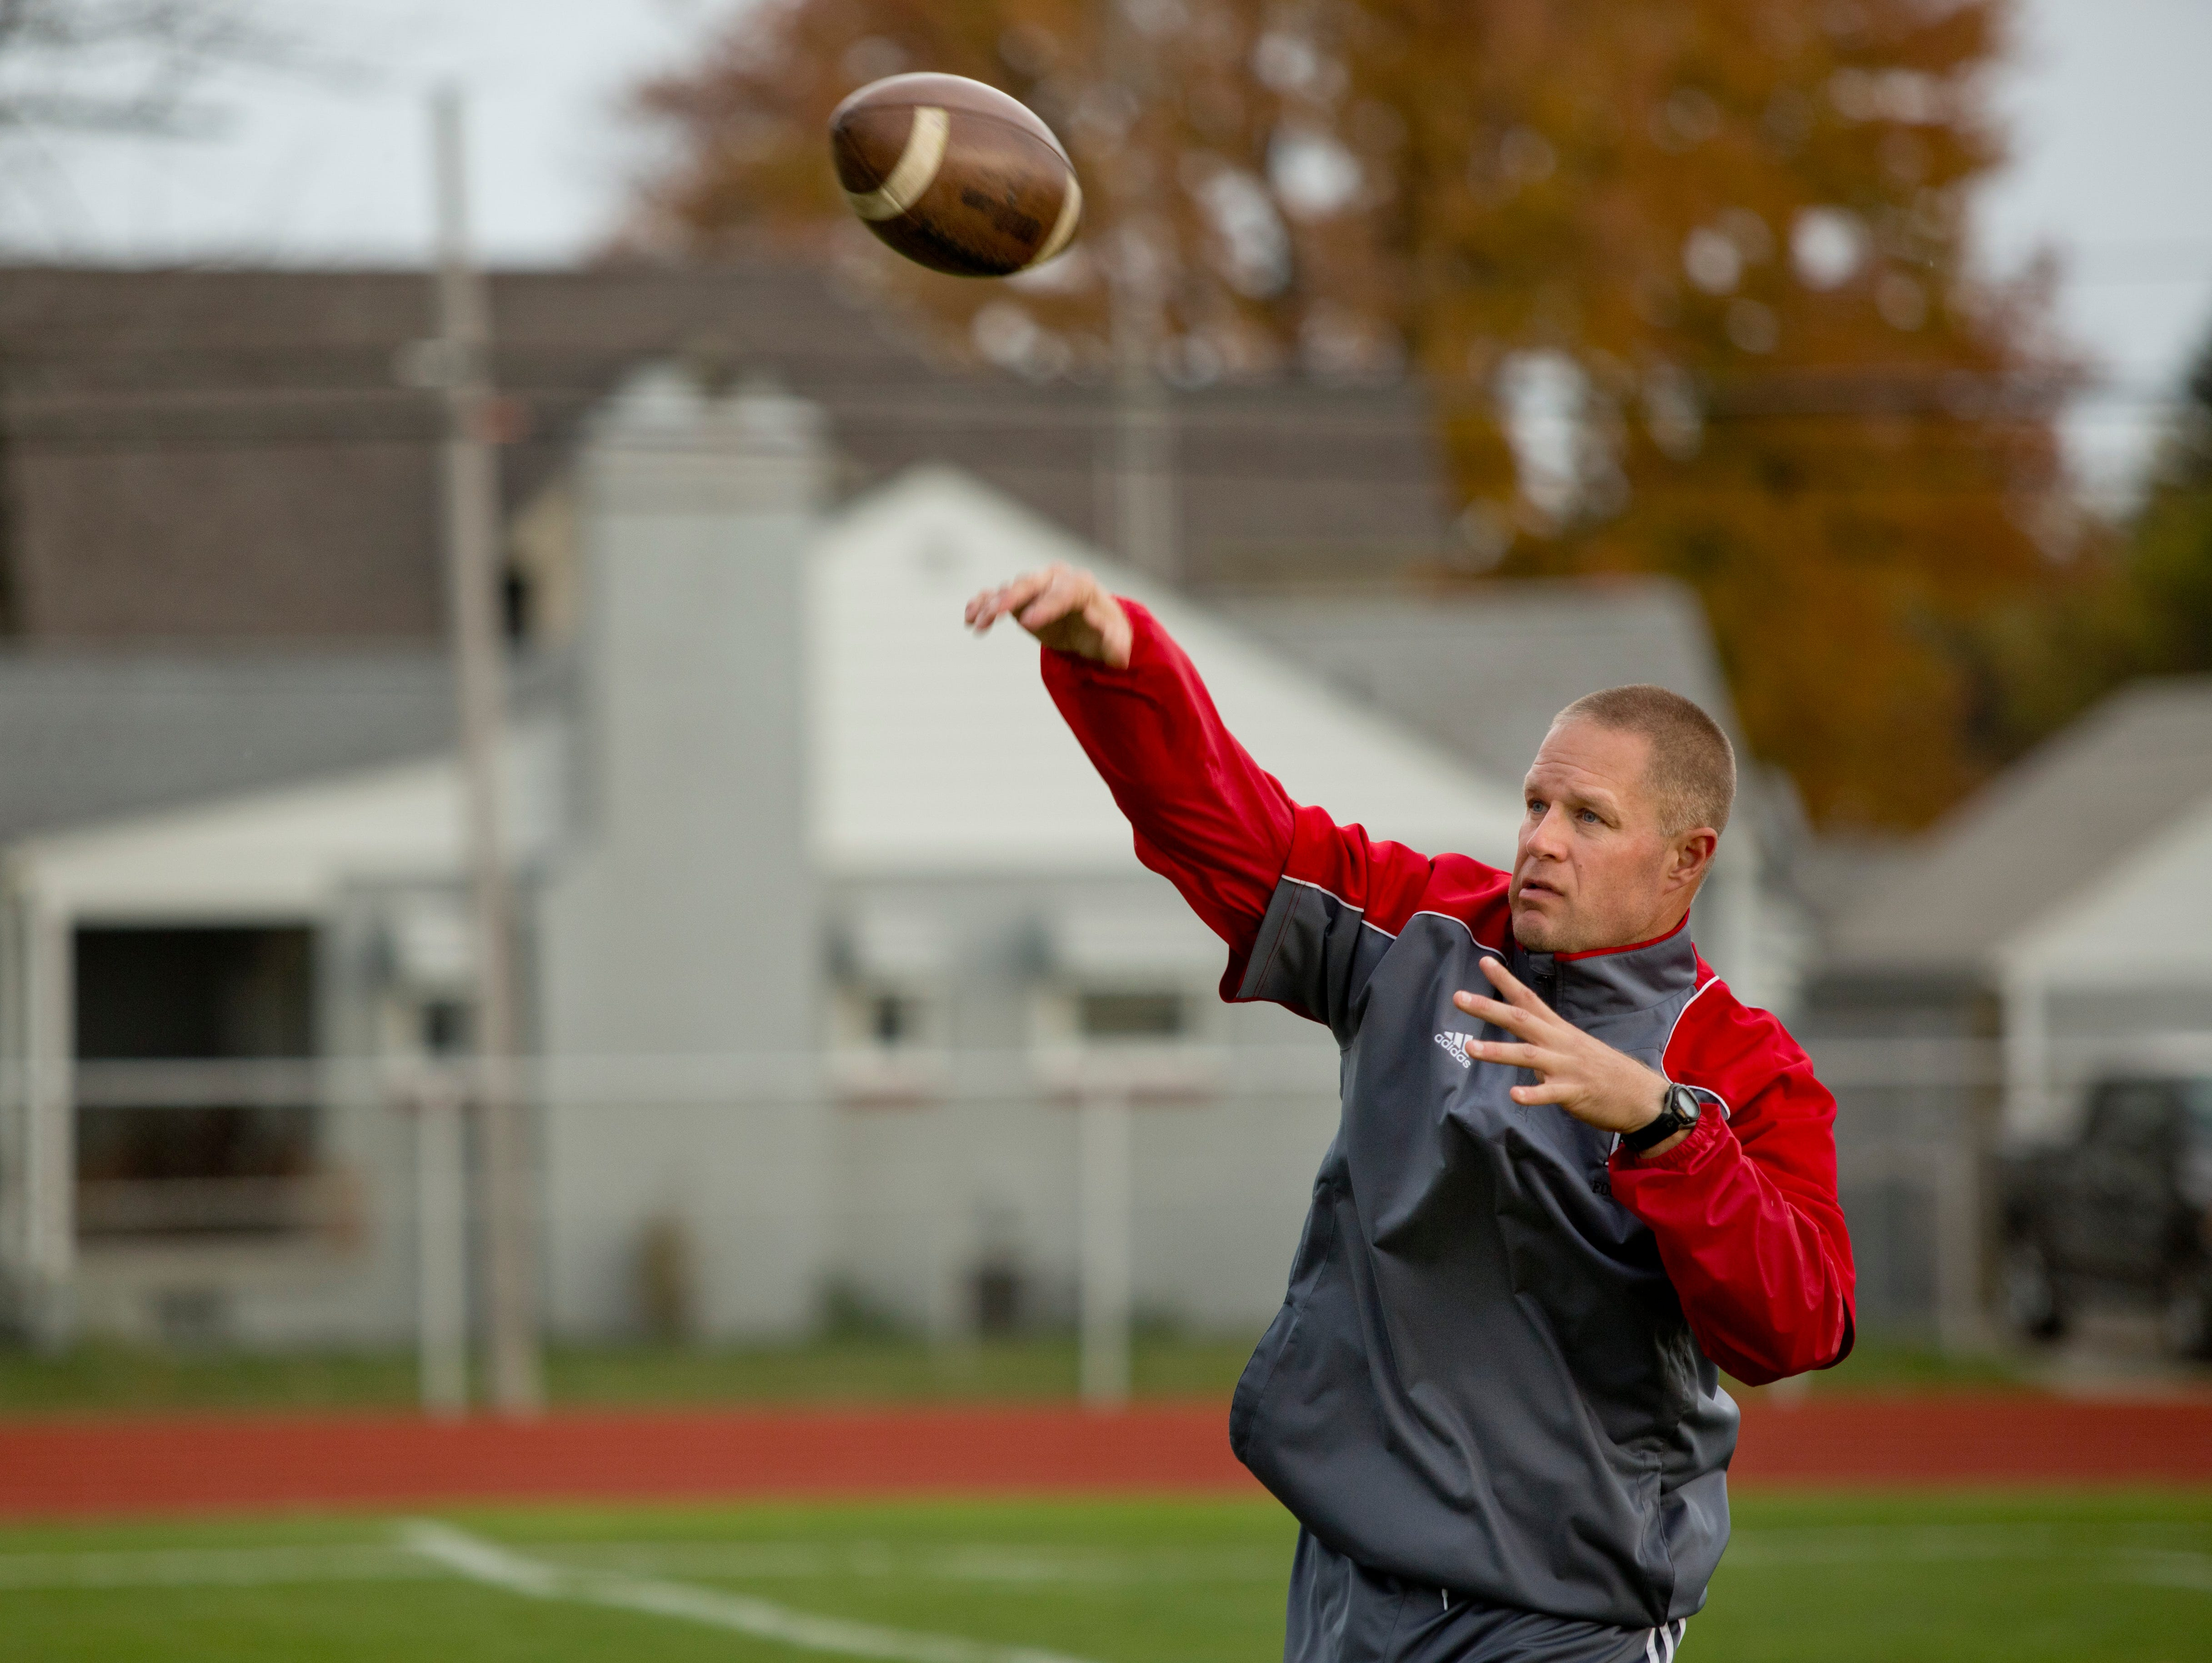 Port Huron coach Ryan Mullins throws a pass during practice Tuesday, October 20, 2015 at Port Huron High School.